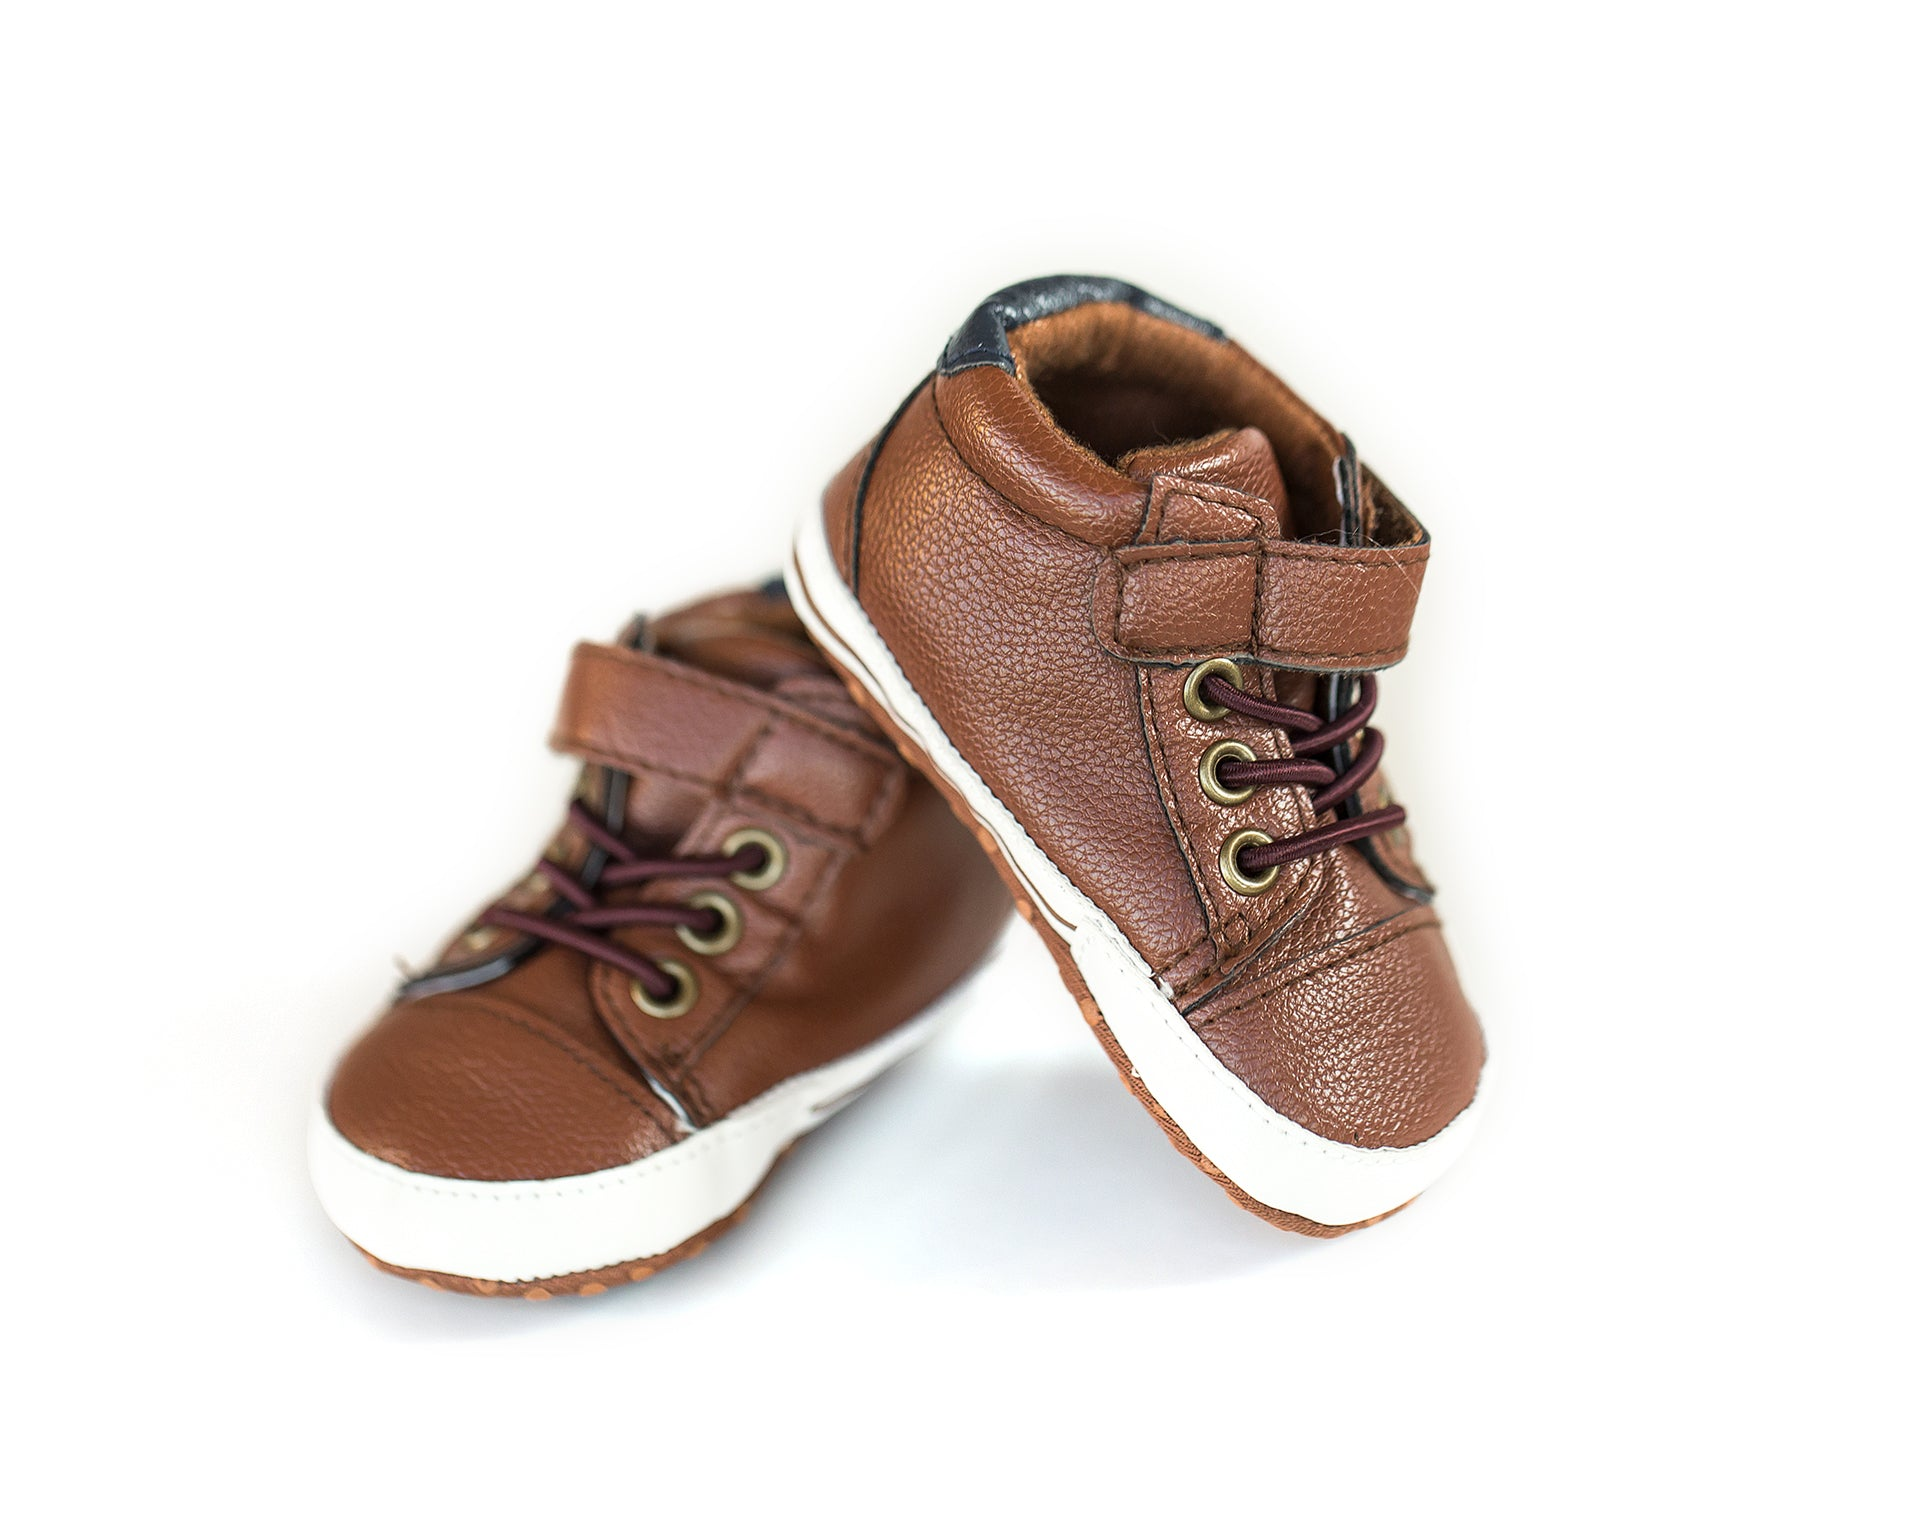 Dude Shoes in Leather Cognac - Reverie Threads